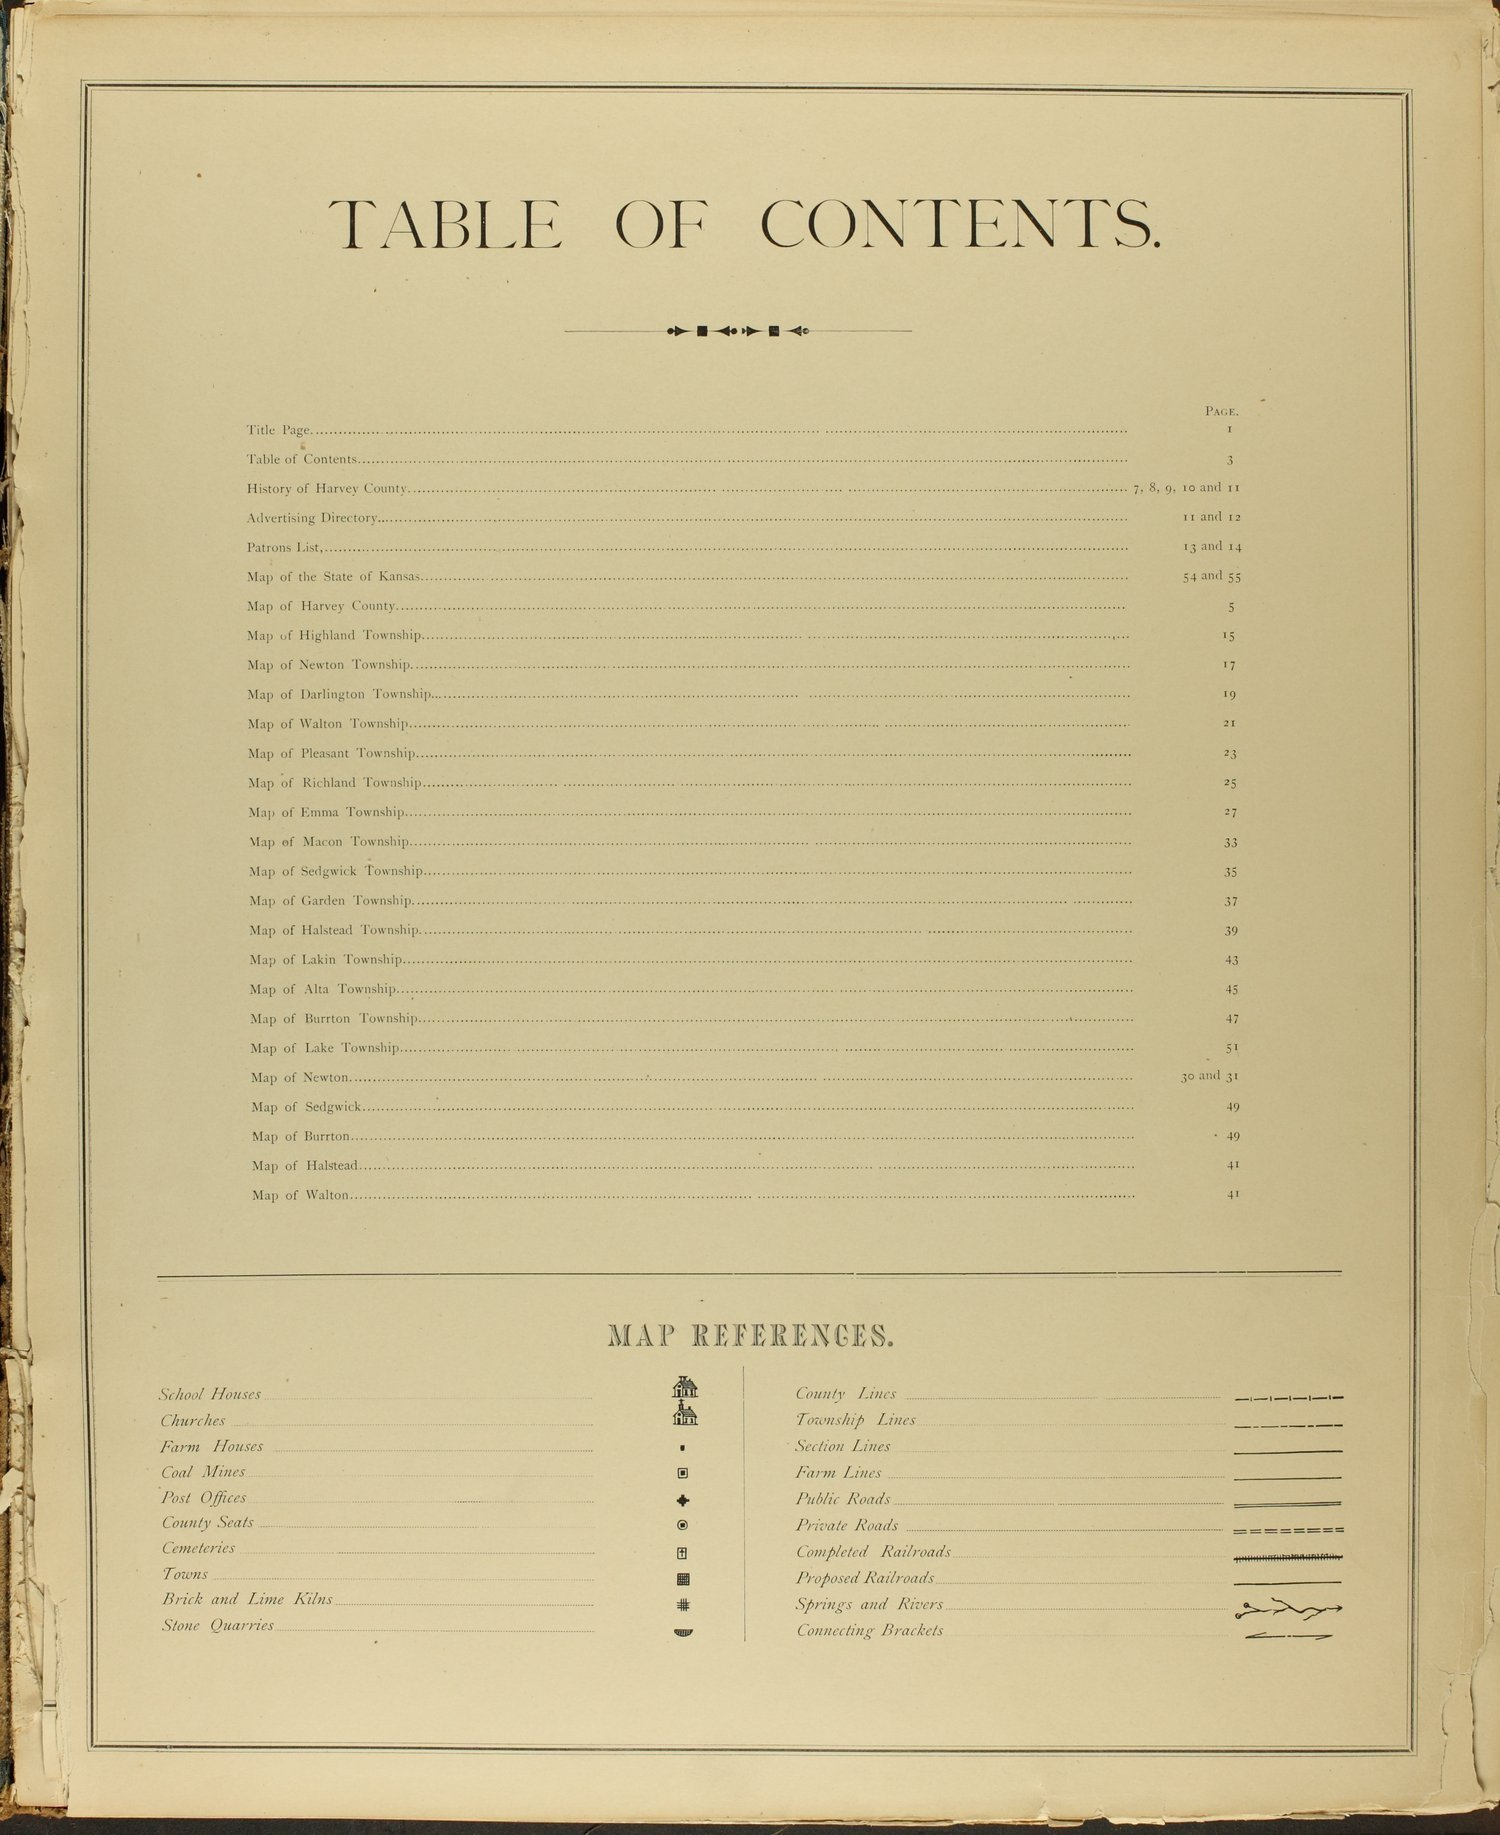 Historical atlas of Harvey County, Kansas - Table of Contents